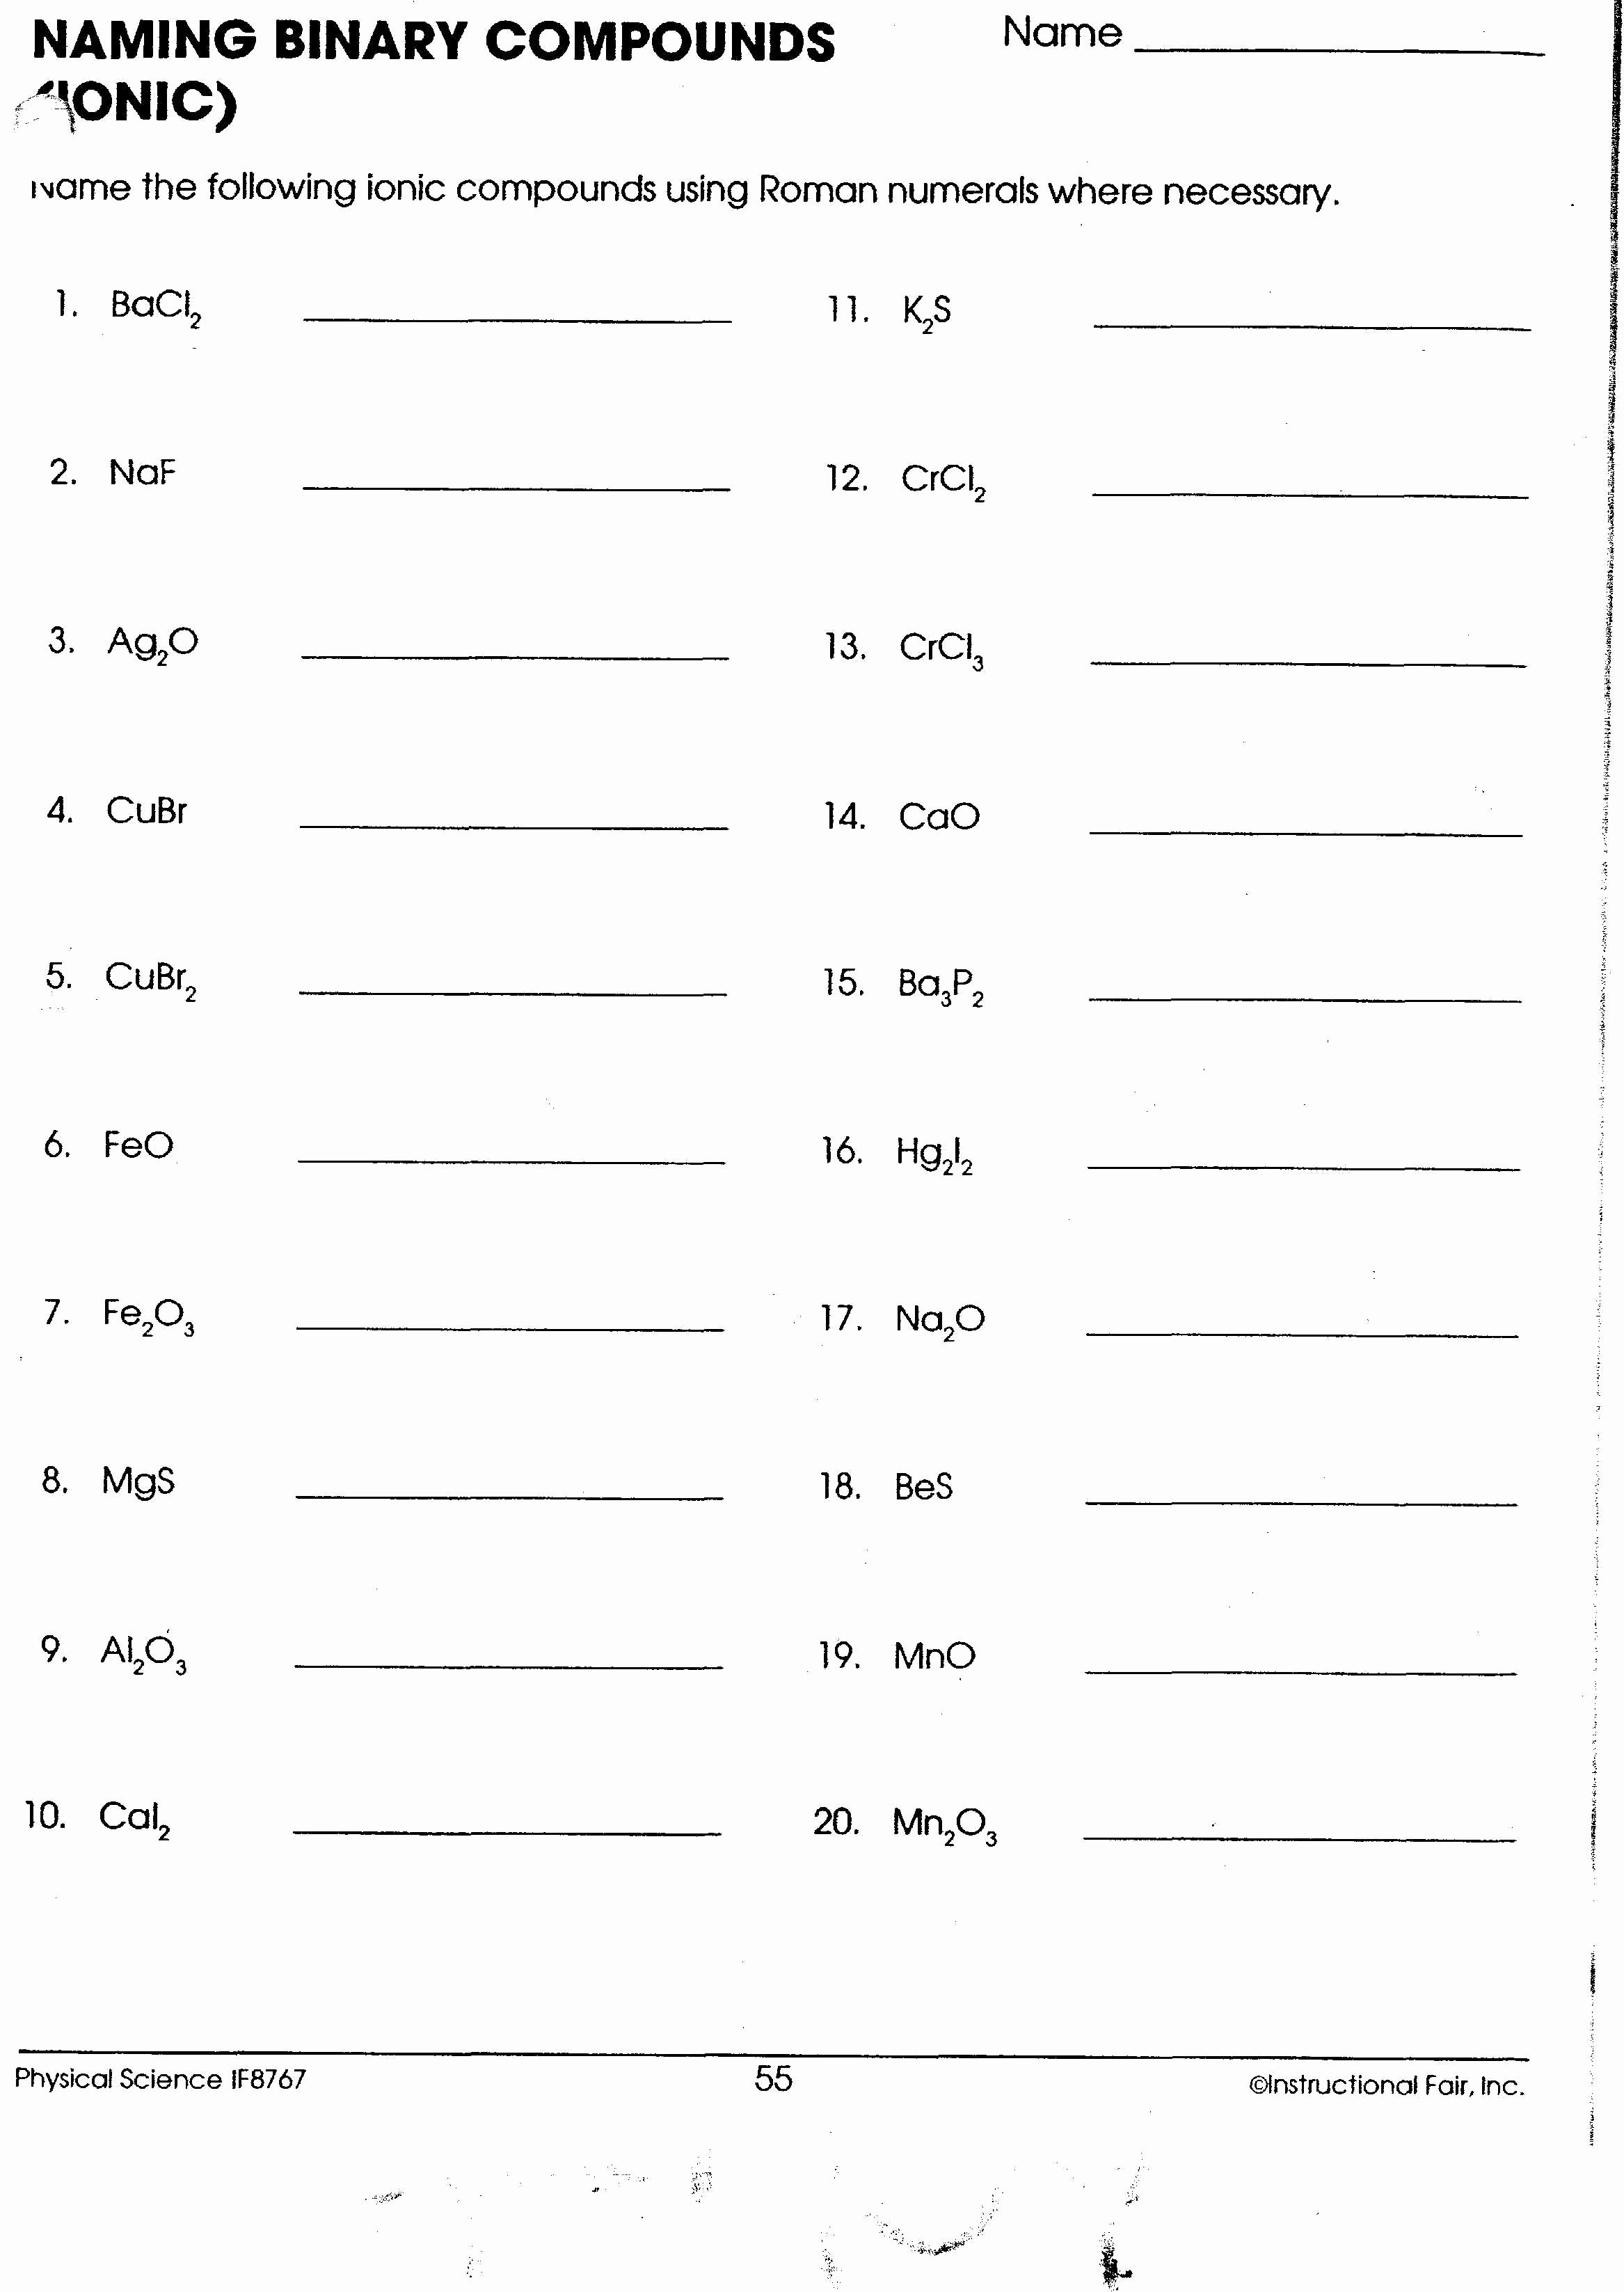 Naming Chemical Compounds Worksheet Answers Best Of Writing Chemical formulas for Covalent Pounds Worksheet